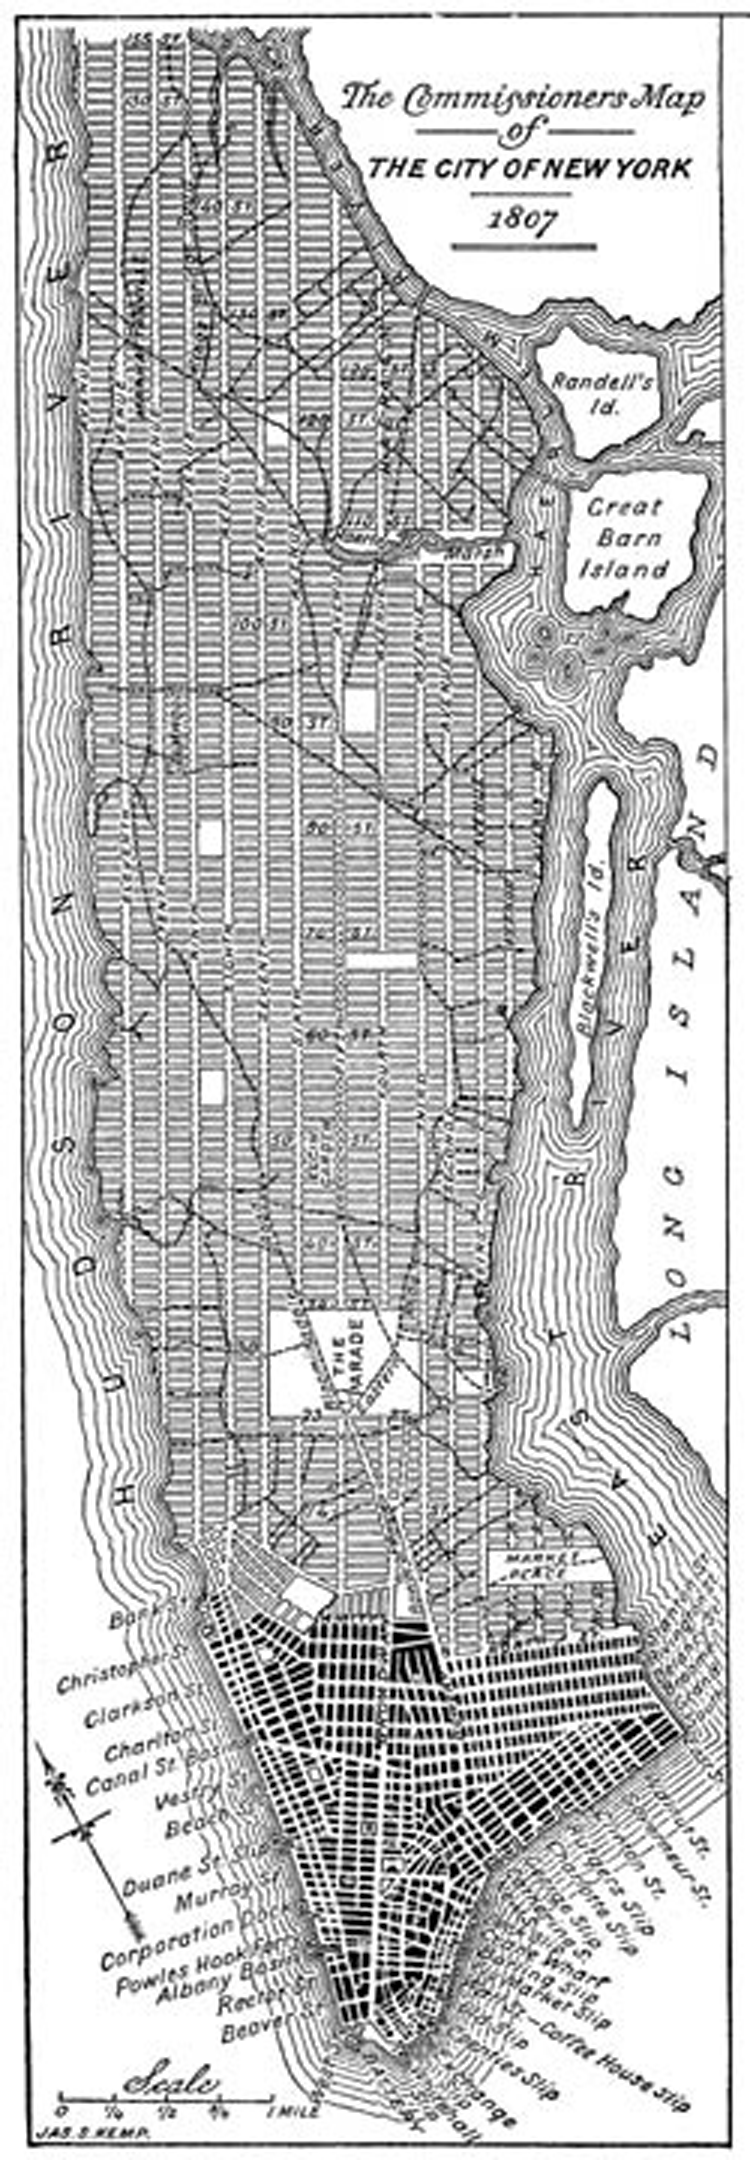 A modern redrawing of the 1807 version of the Commissioner's Grid plan for Manhattan, a few years before it was adopted in 1811